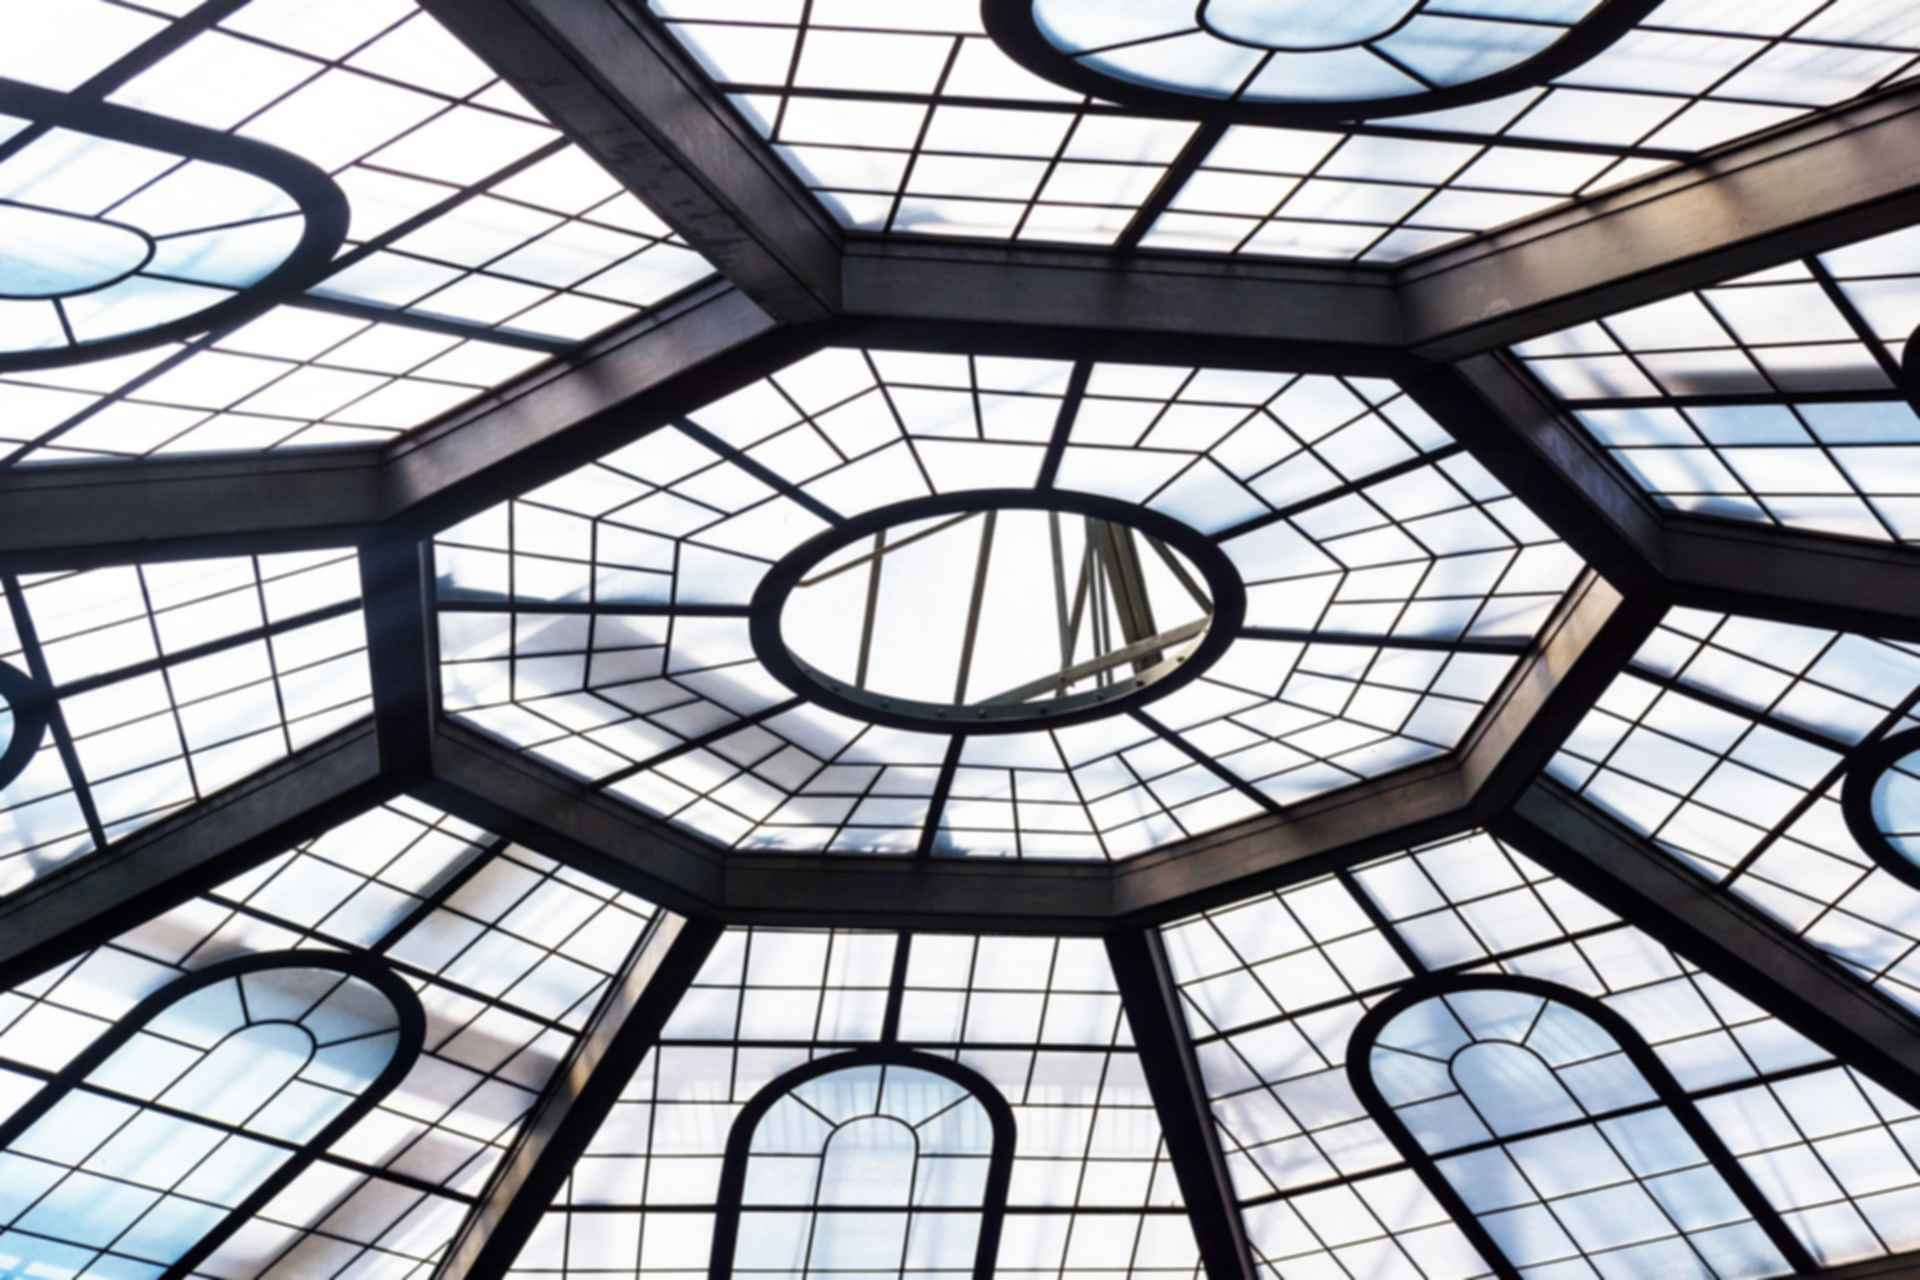 Vatican City - Skylight